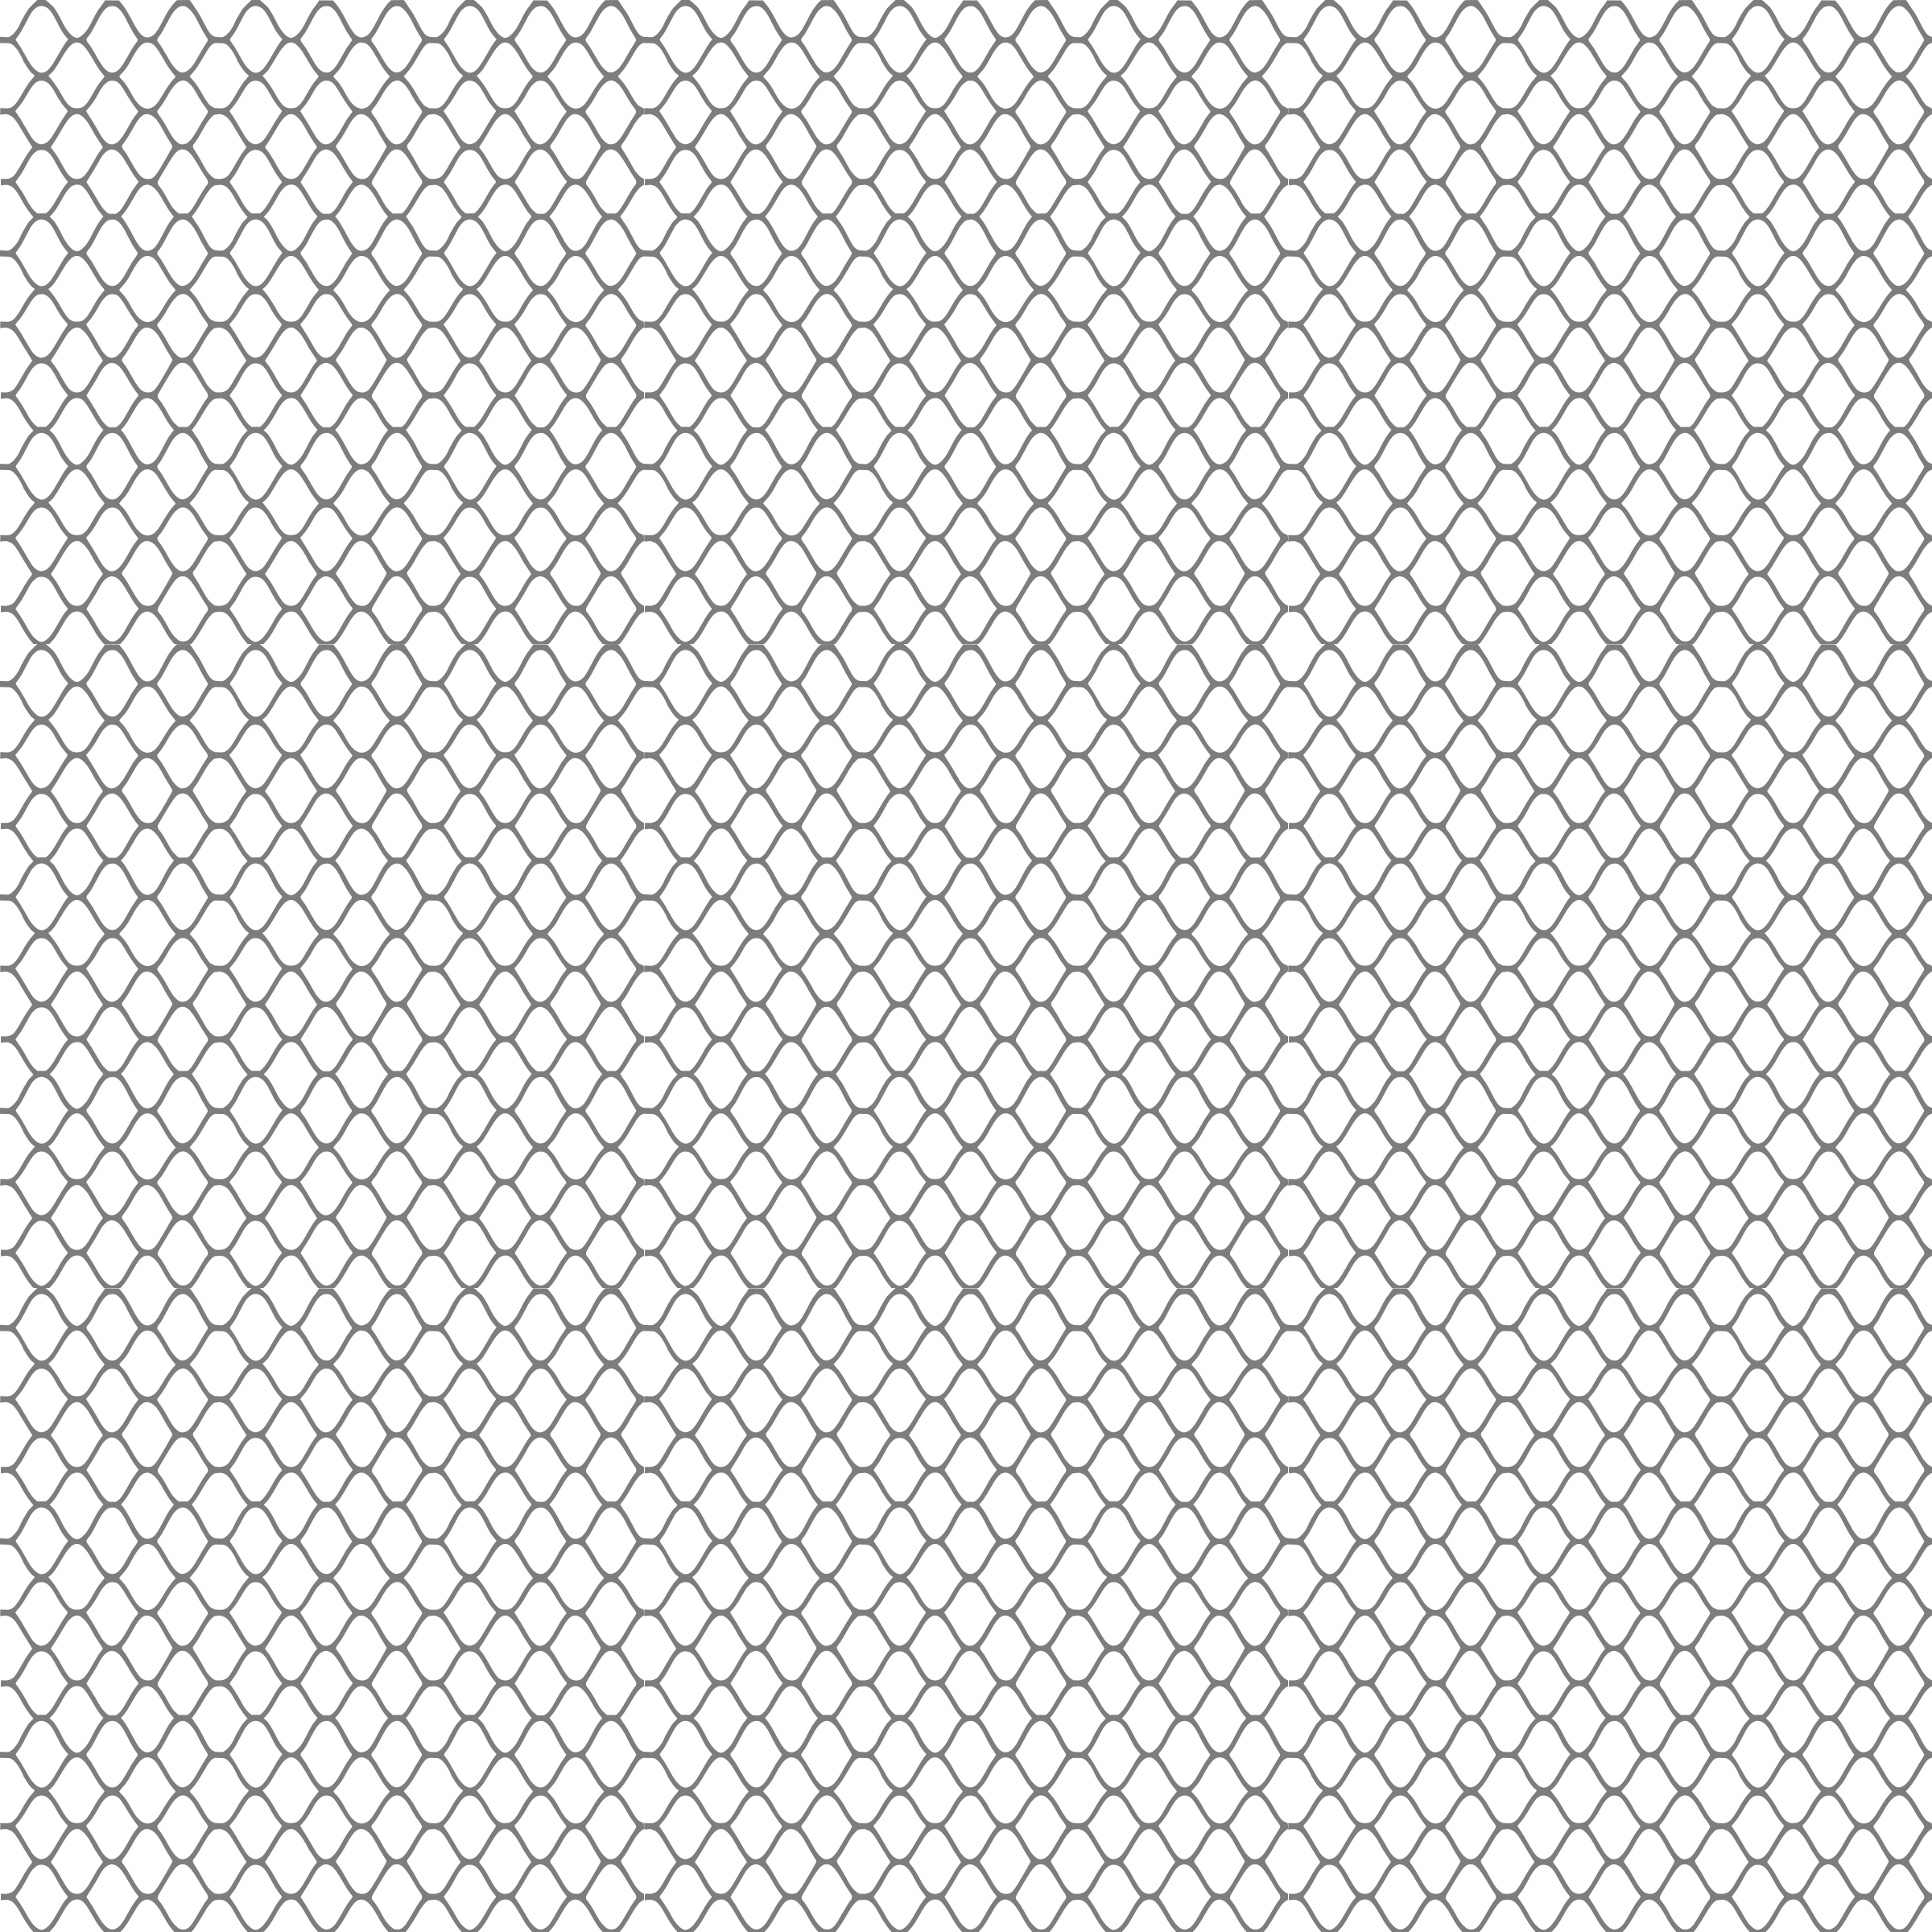 Fabric vector seamless. Net pattern png res